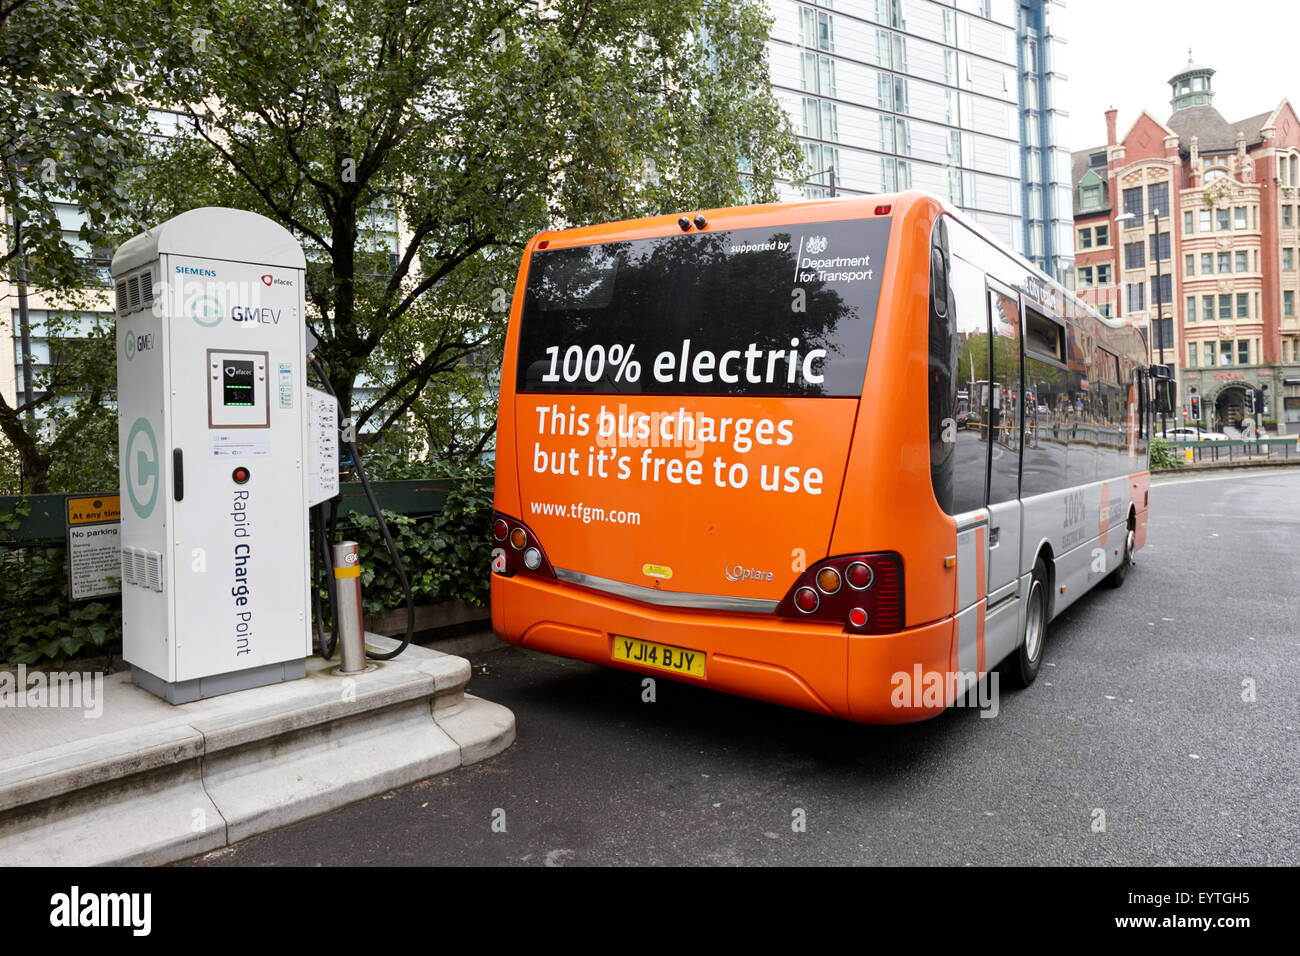 charging metro shuttle free electric bus service in Manchester city centre England UK - Stock Image